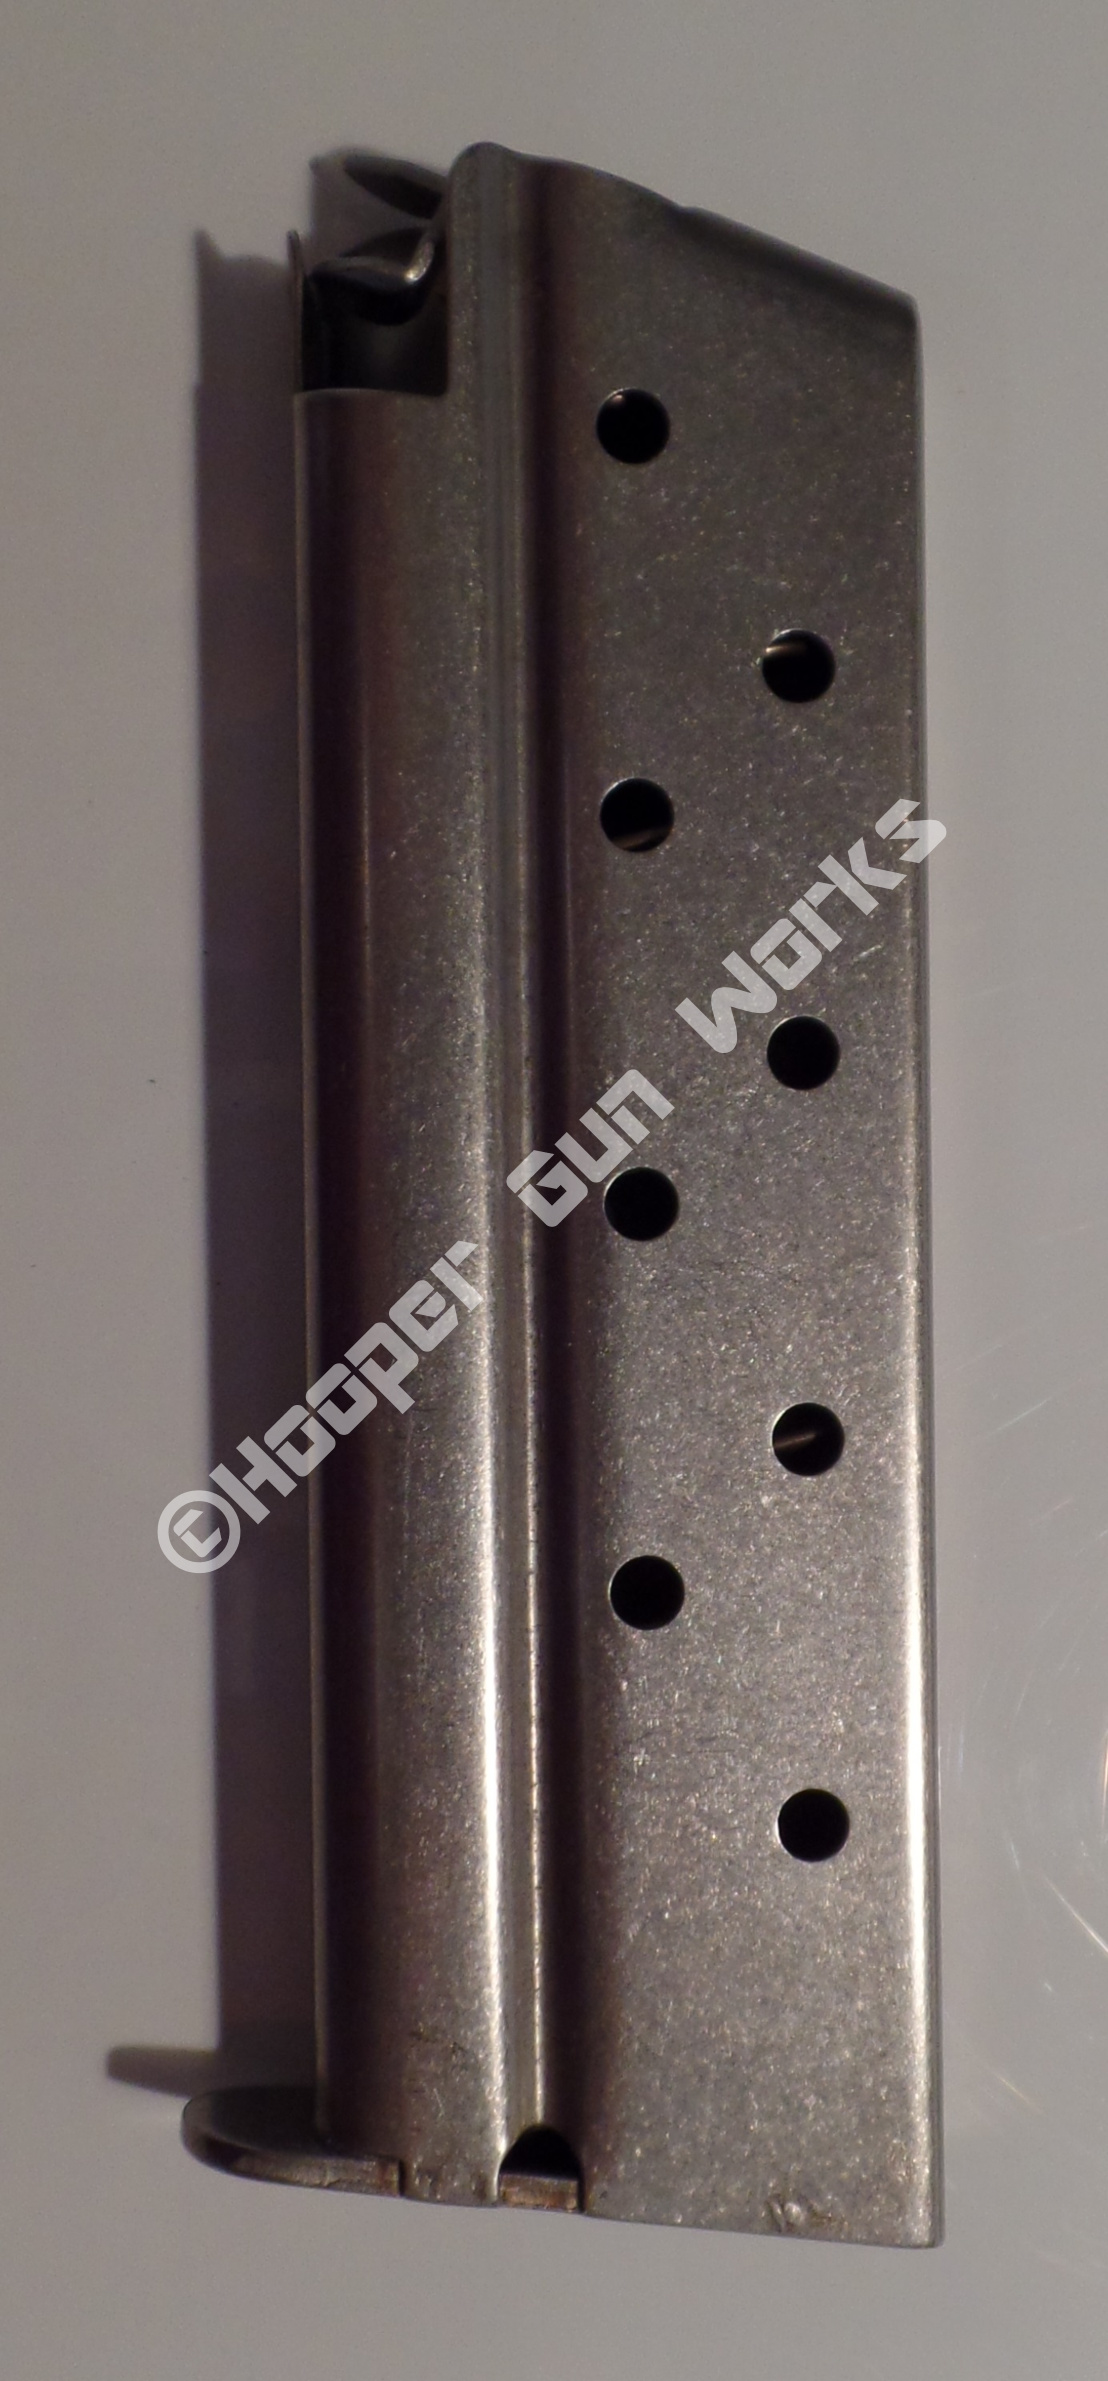 Metalform for Rock Island Armory 1911 9mm 8 round Magazine Compact  Stainless Steel